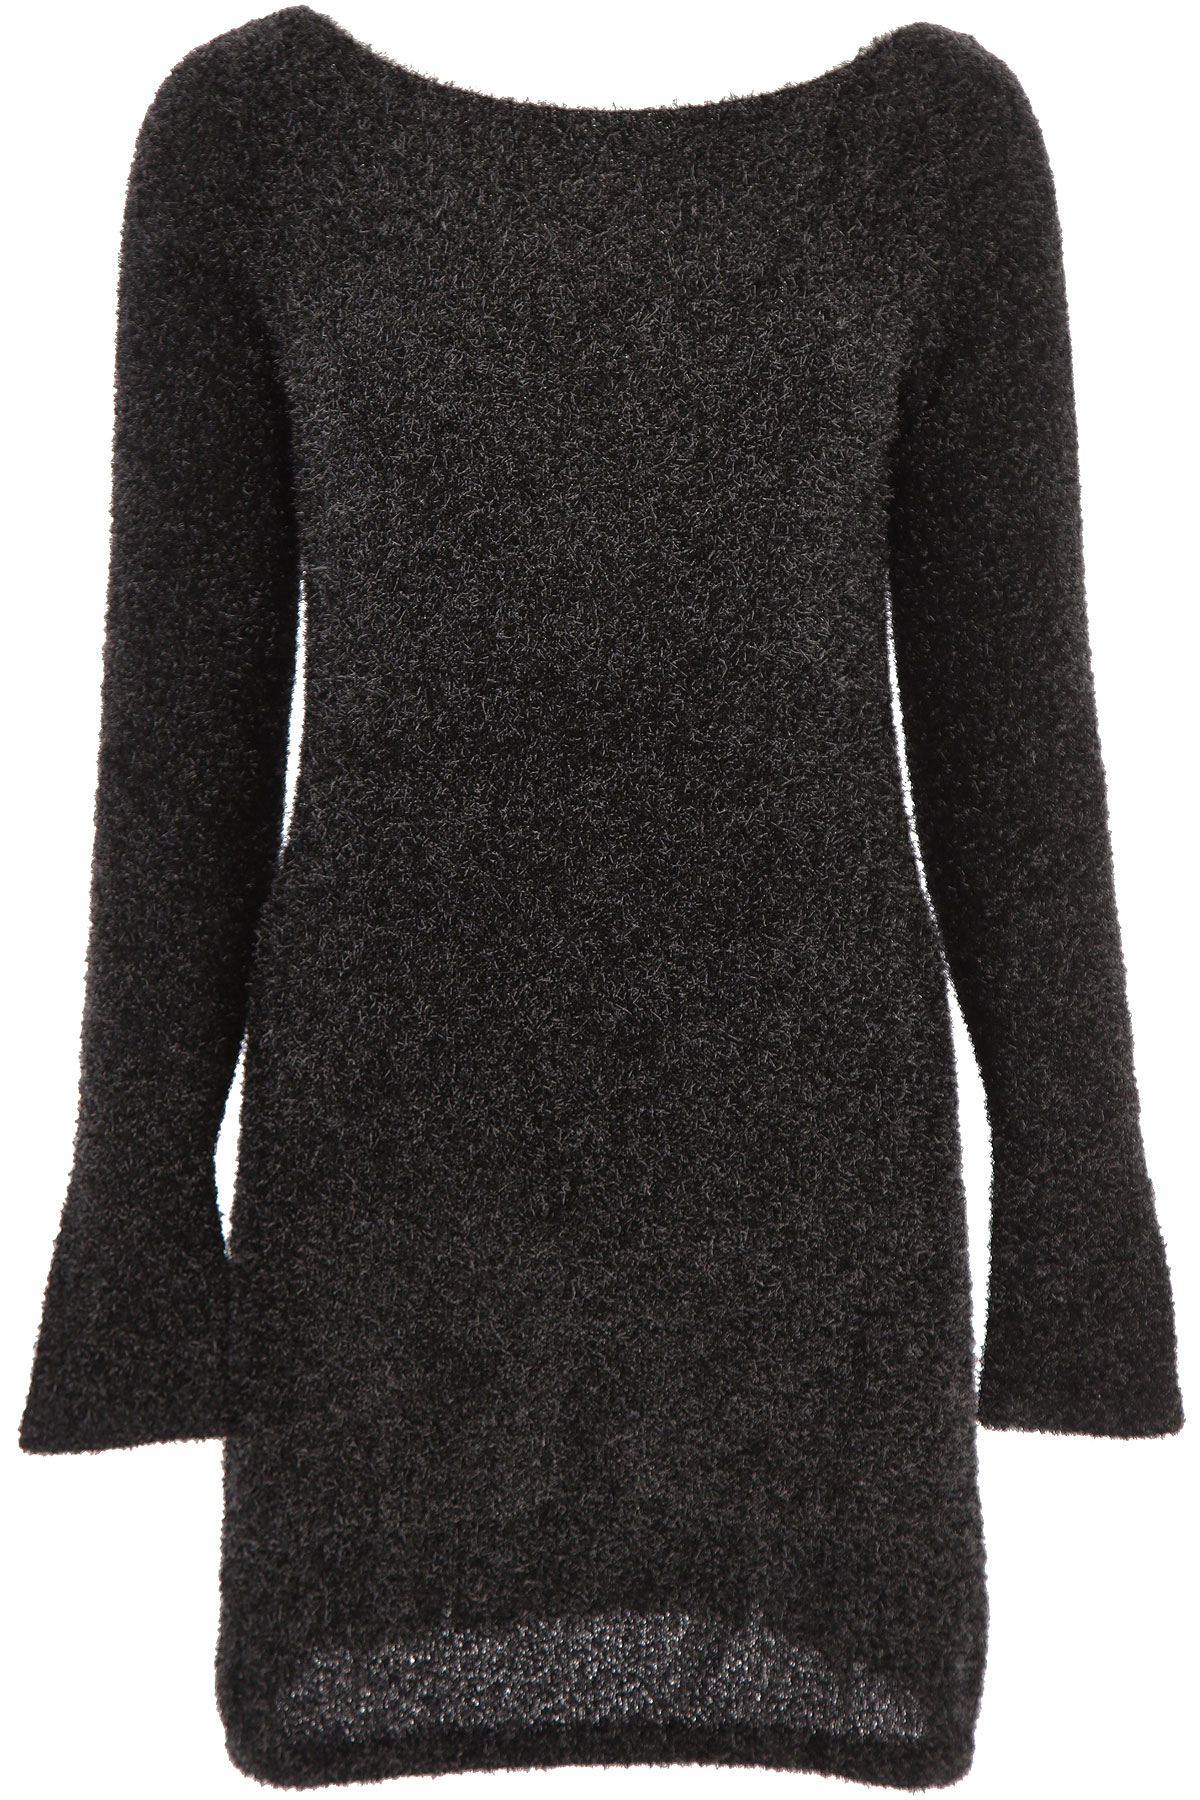 P.A.R.O.S.H. Sweater for Women Jumper On Sale, Black, polyester, 2019, 2 4